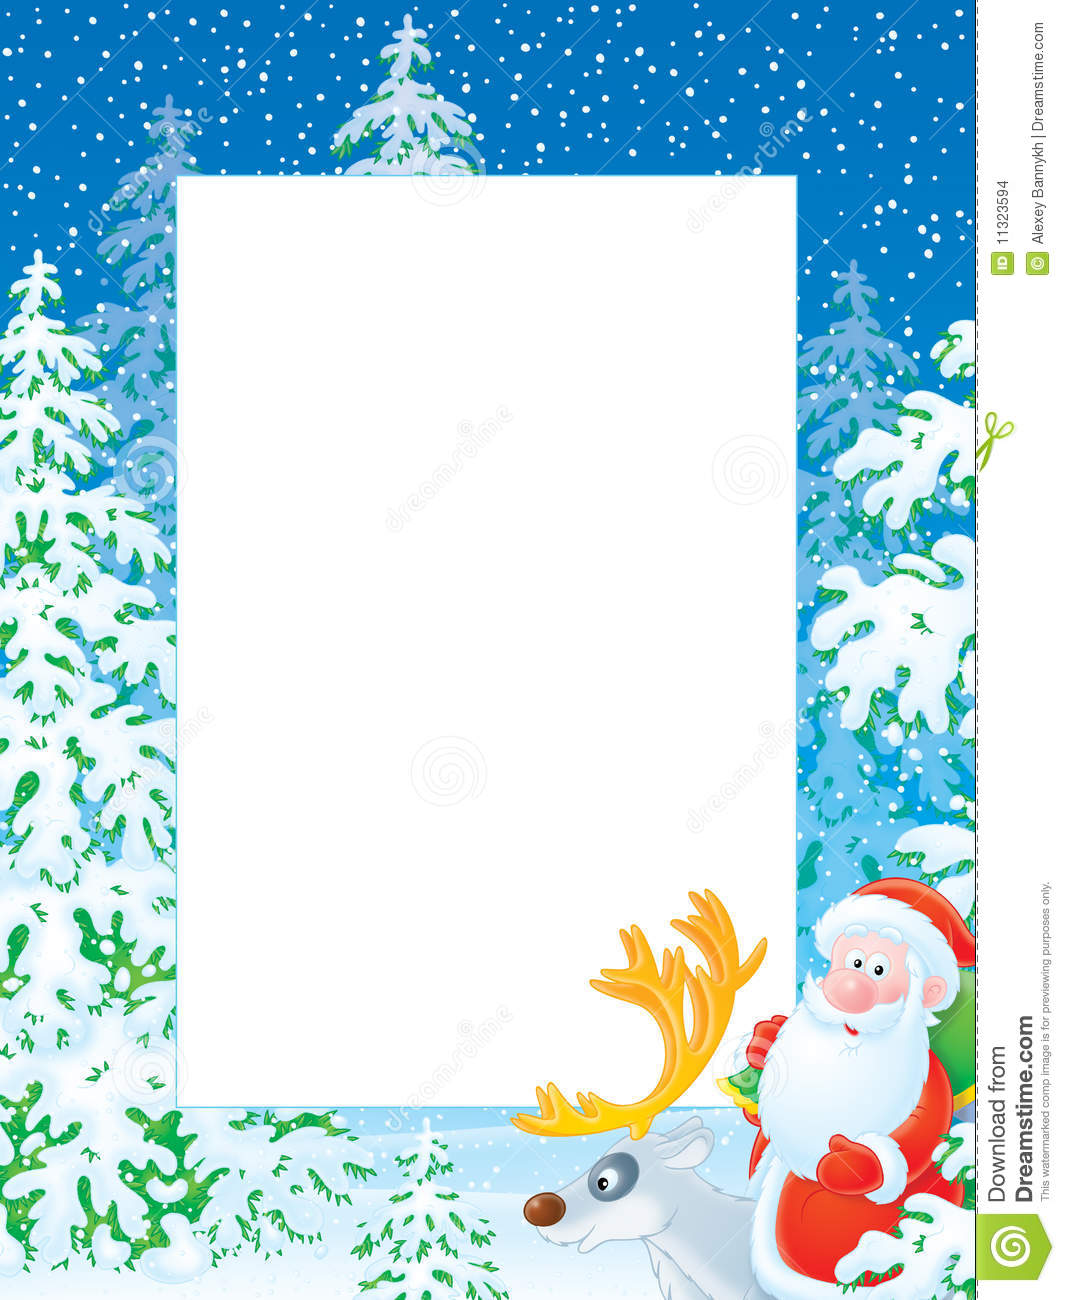 High Resolution Border With Santa Claus And Reindeer For Your Photo Or